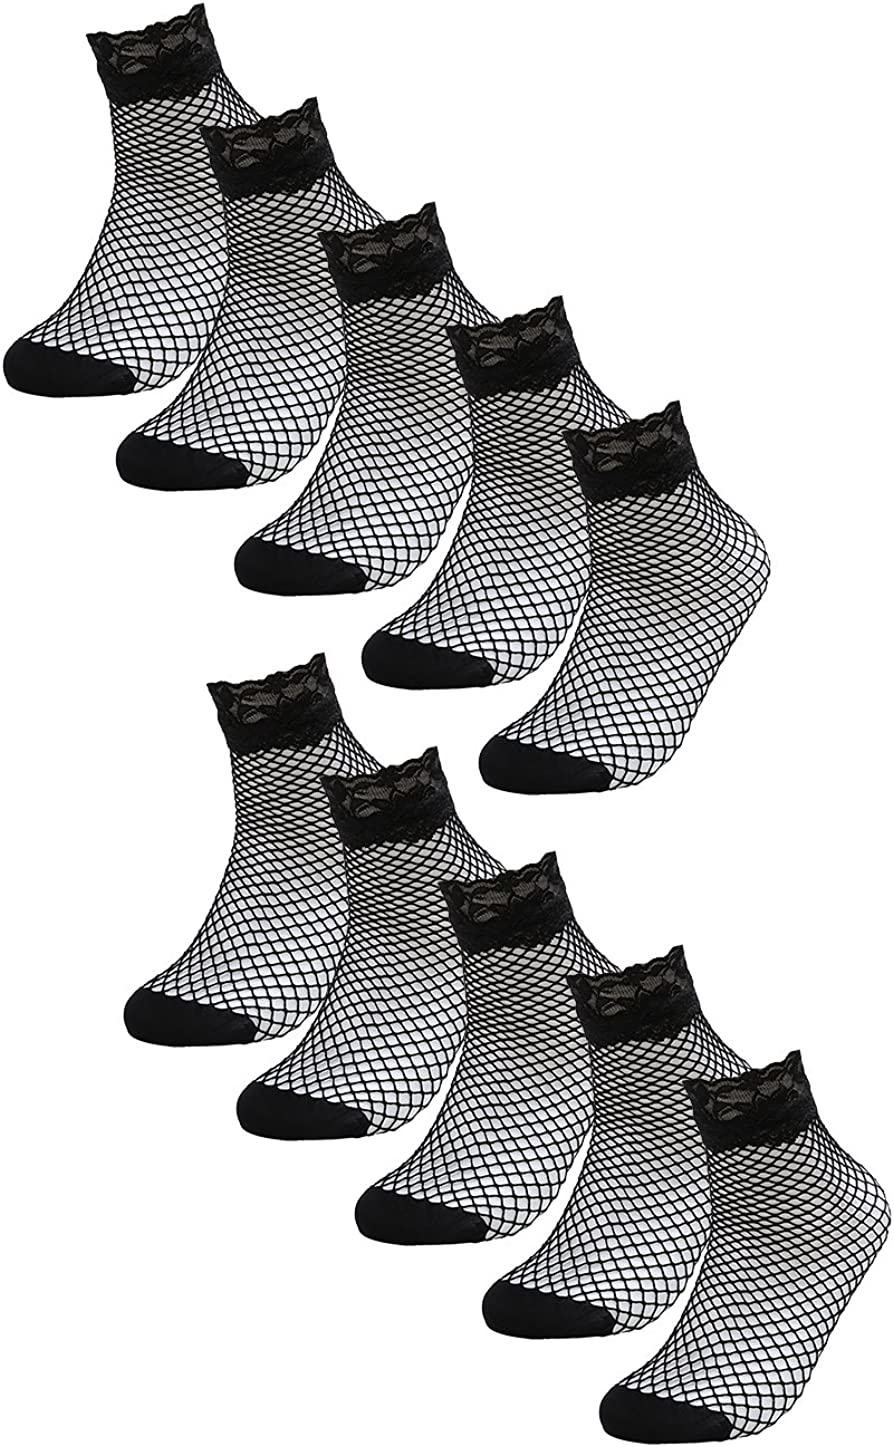 uxcell Women 10 Pairs Stylish Black Lace Fishnet Sheer Ankle Socks Tights